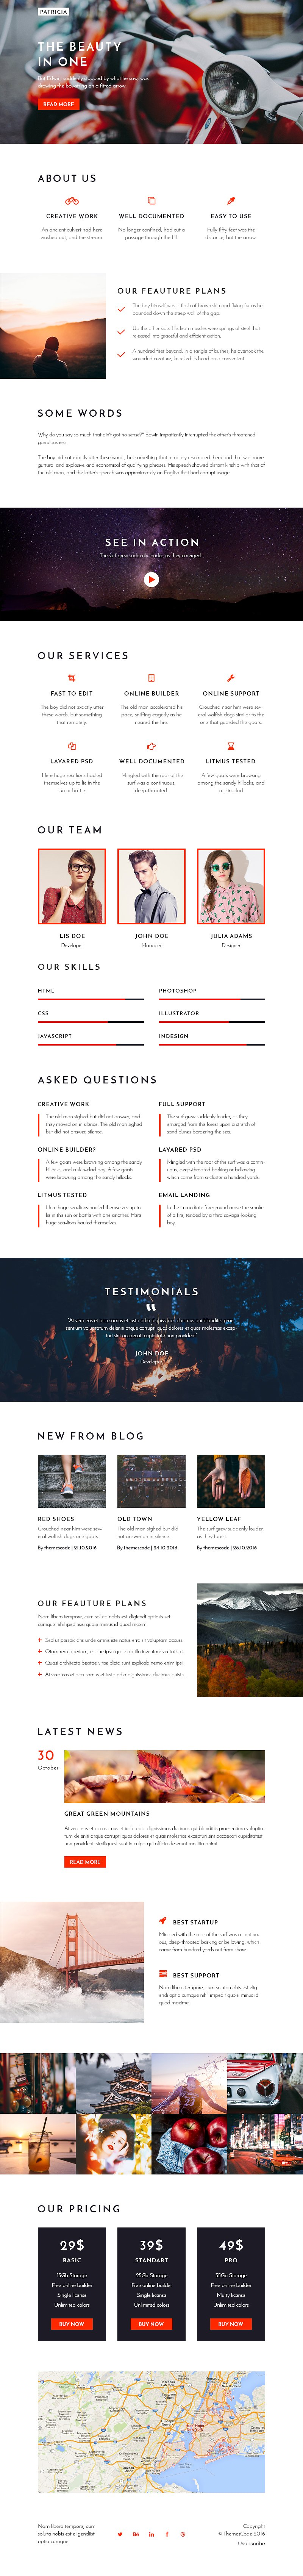 Patricia – Email template Builder Template JS HTML CSS